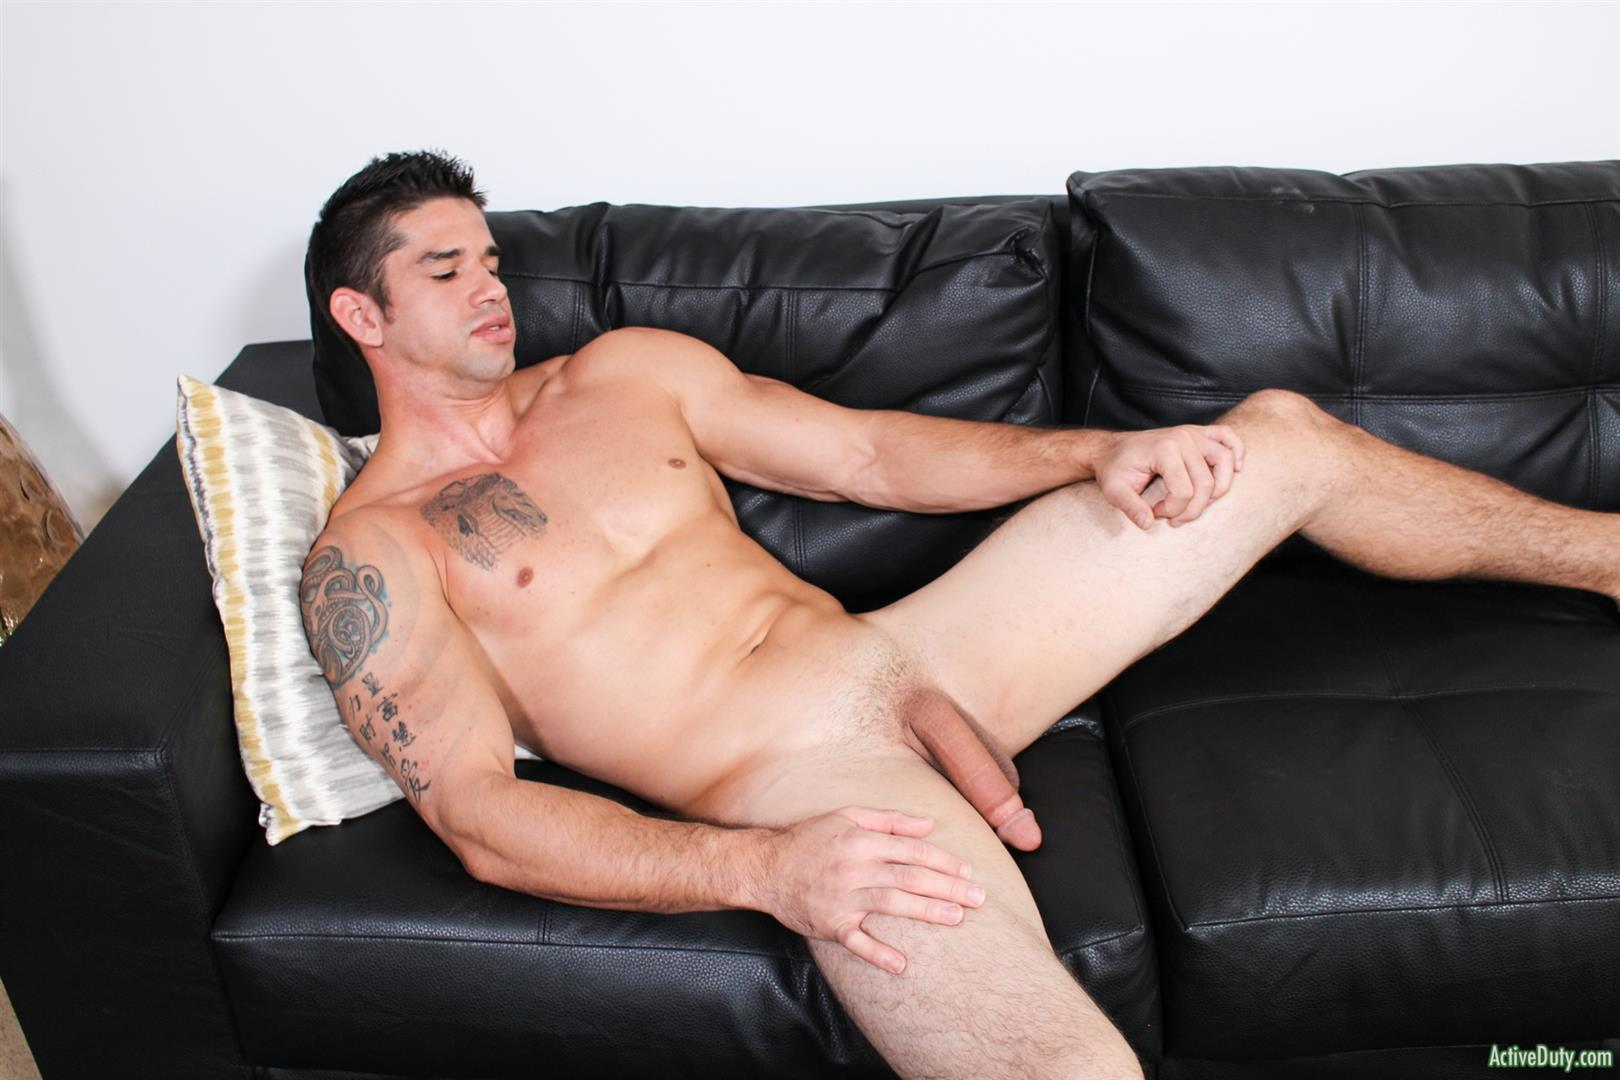 Active-Duty-Jason-Richards-Army-Naked-Soldier-With-A-Big-Cock-09 Check Out The Long Cock On This New Army Recruit